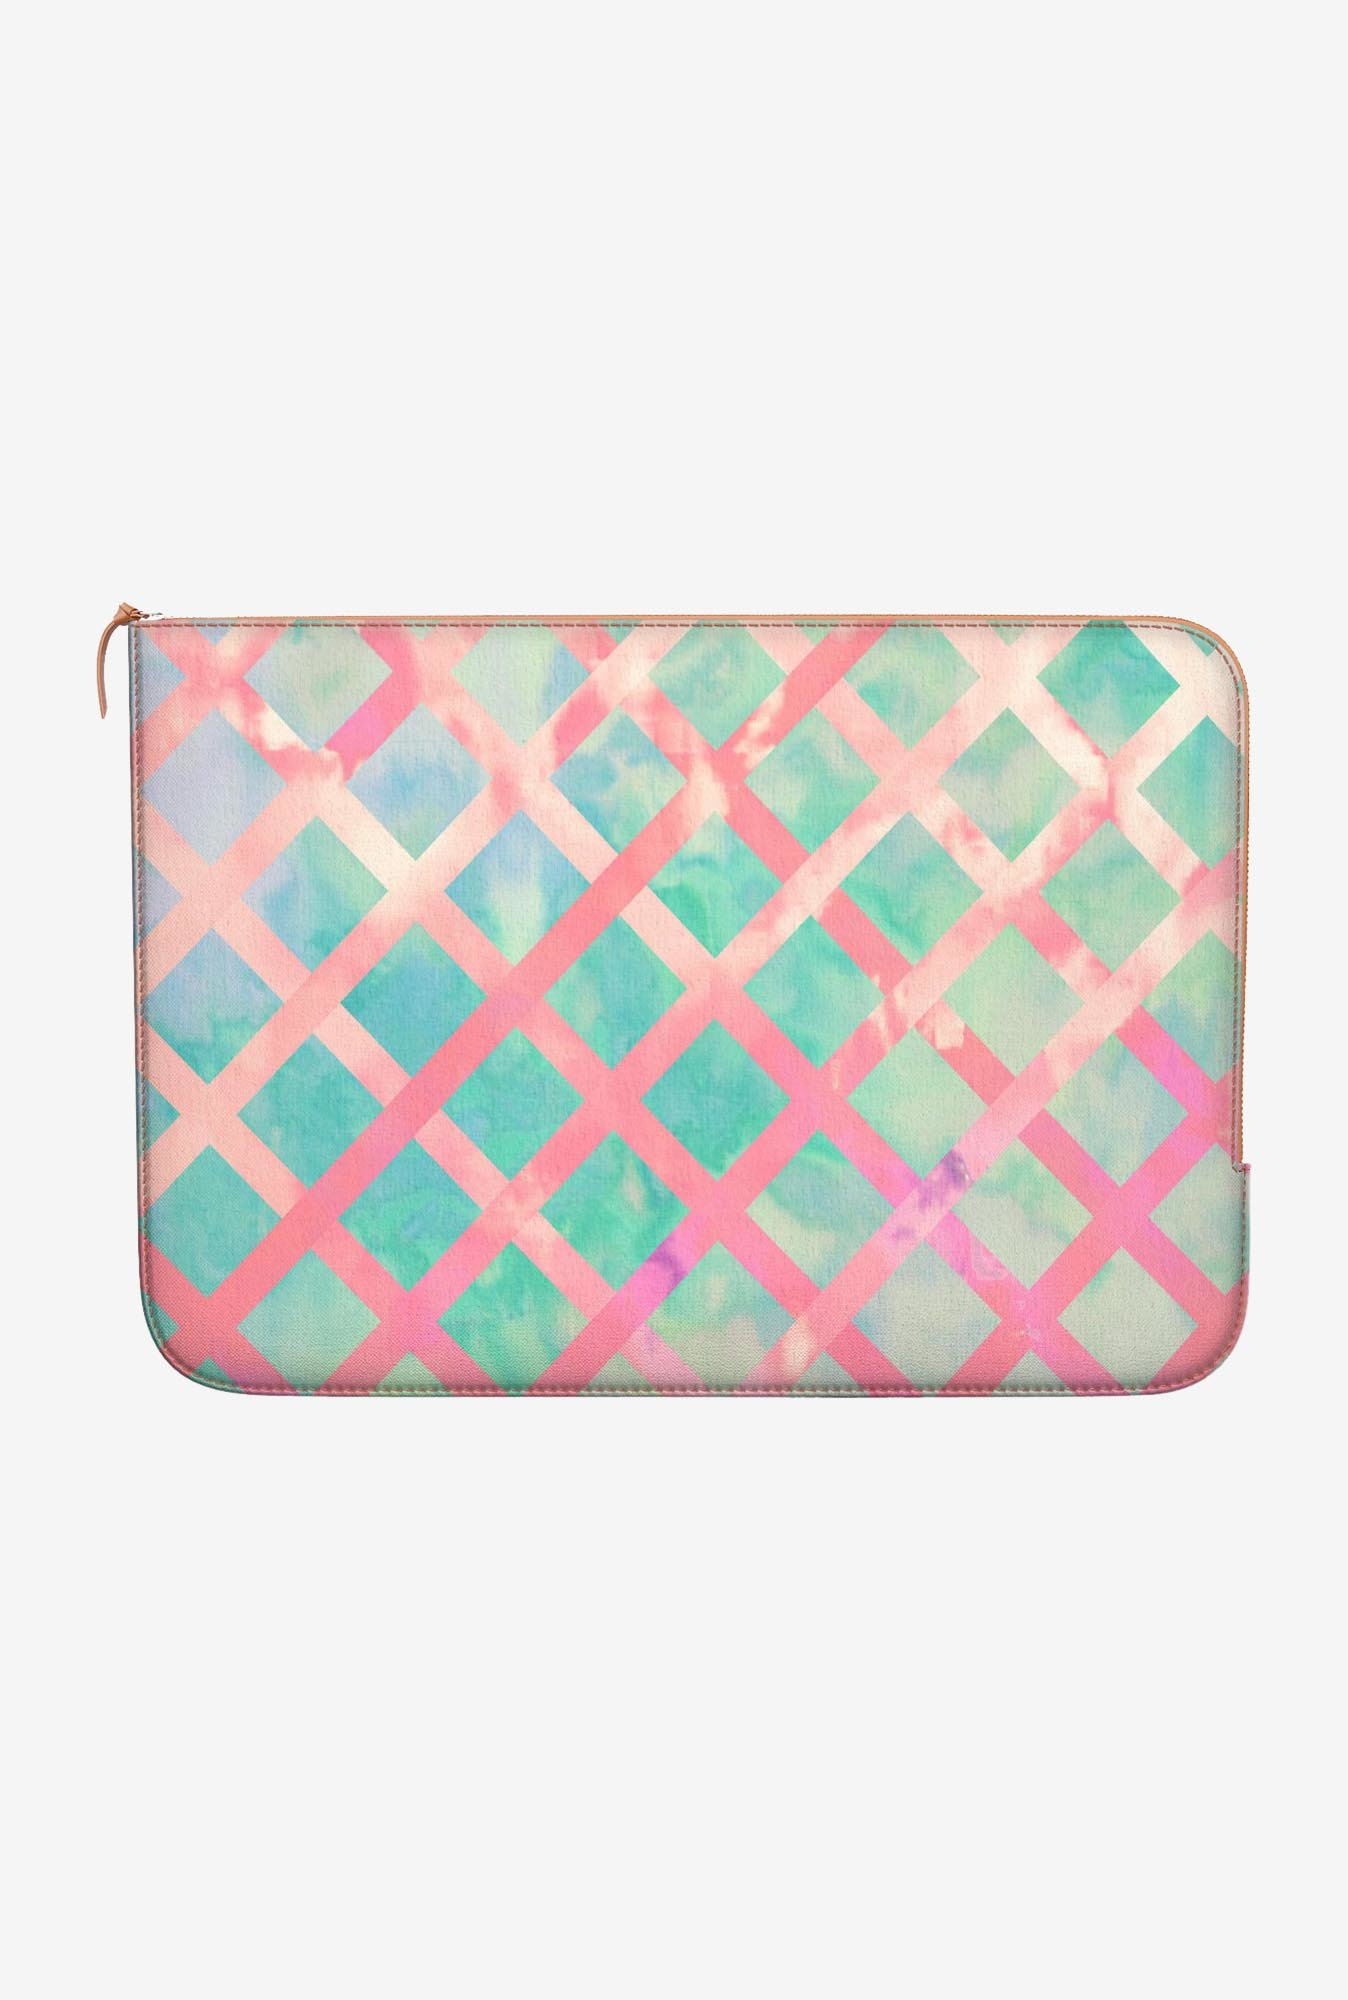 DailyObjects Retro Lattice MacBook Pro 15 Zippered Sleeve